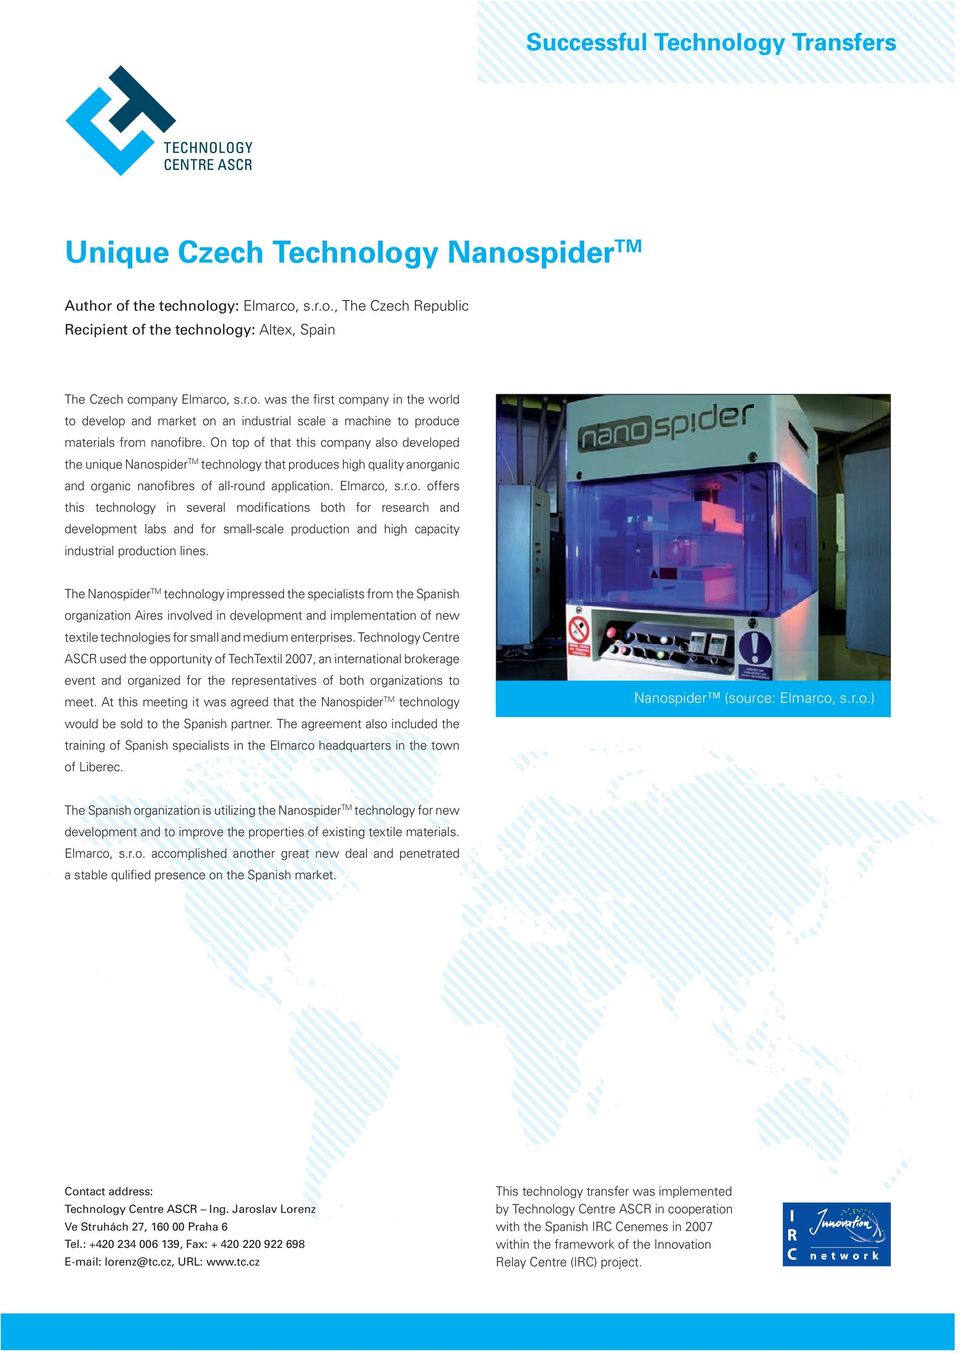 On top of that this company also developed the unique Nanospider TM technology that produces high quality anorganic and organic nanofibres of all-round application. Elmarco, s.r.o. offers this technology in several modifications both for research and development labs and for small-scale production and high capacity industrial production lines.